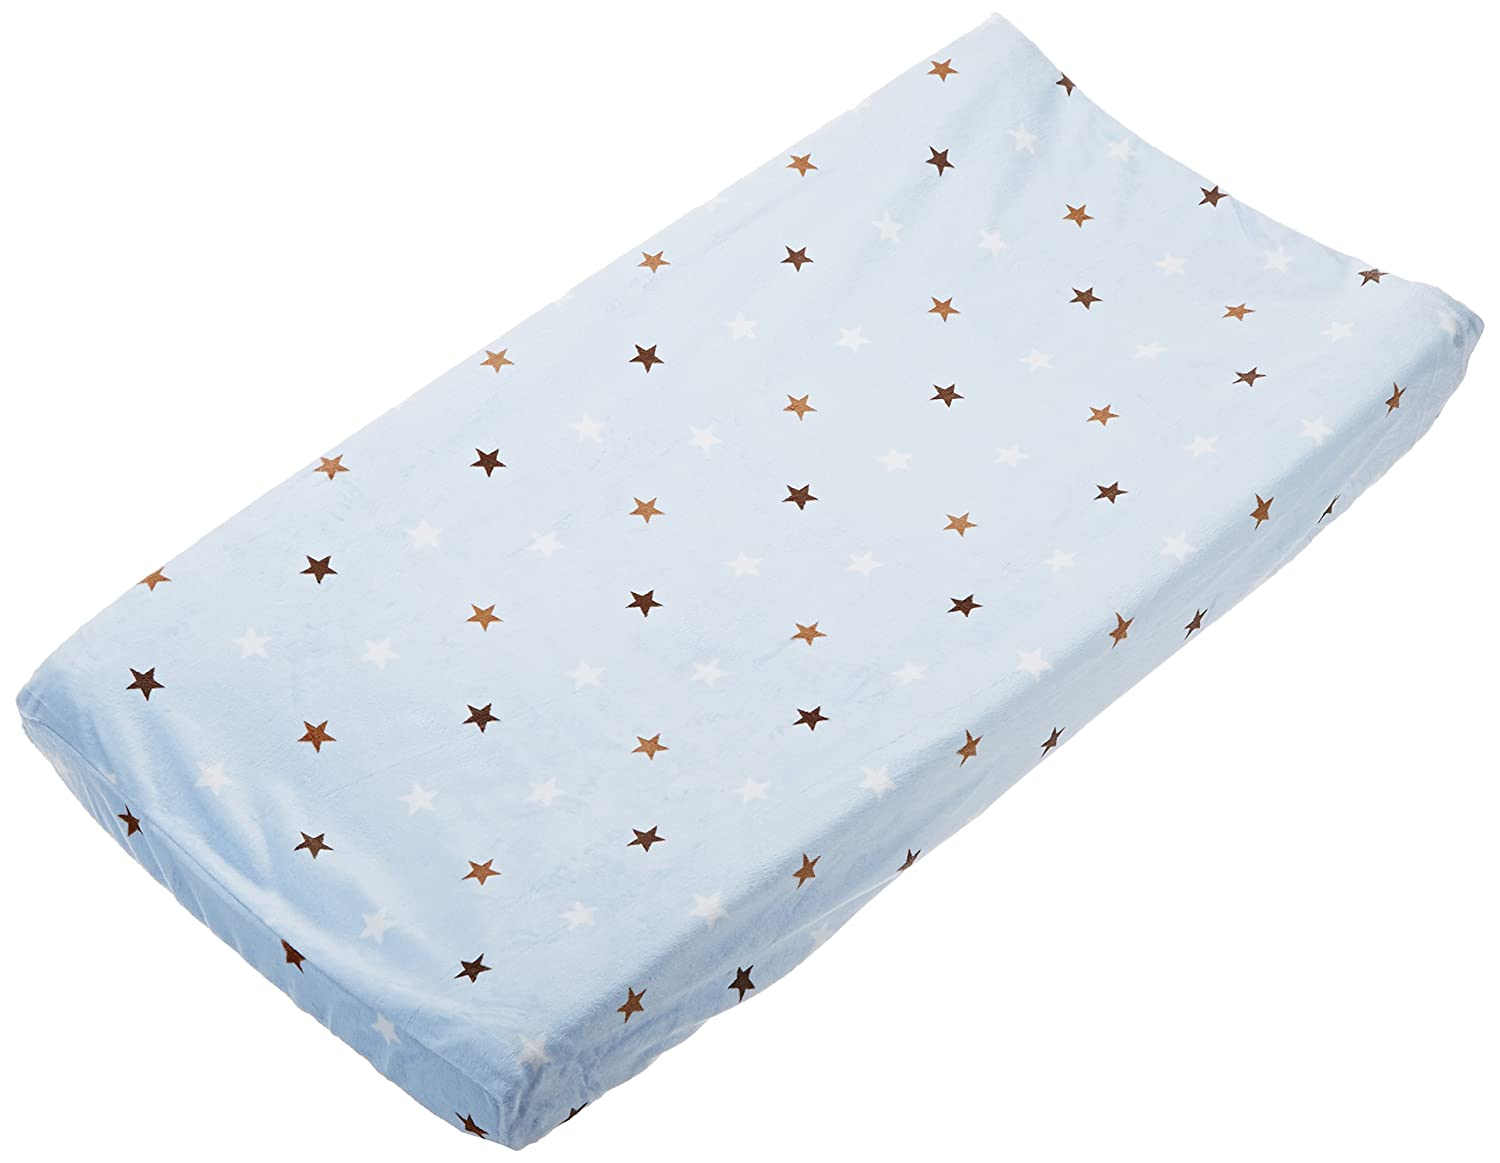 Amazon.com: Carters Velour Changing Pad Cover, Monkey Rockstar (Discontinued by Manufacturer): Baby